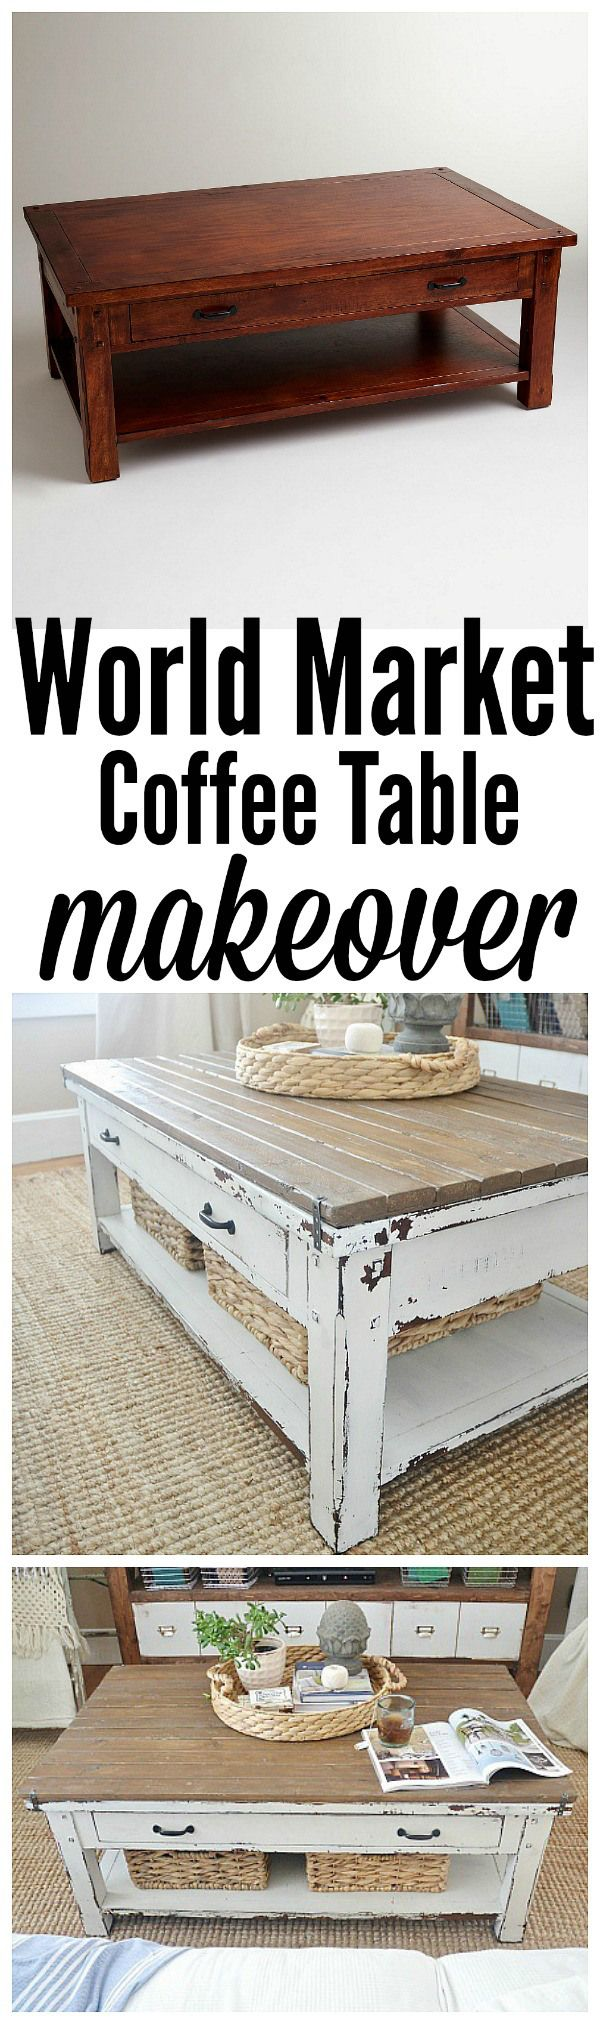 25 Best Ideas About Coffee Table Makeover On Pinterest